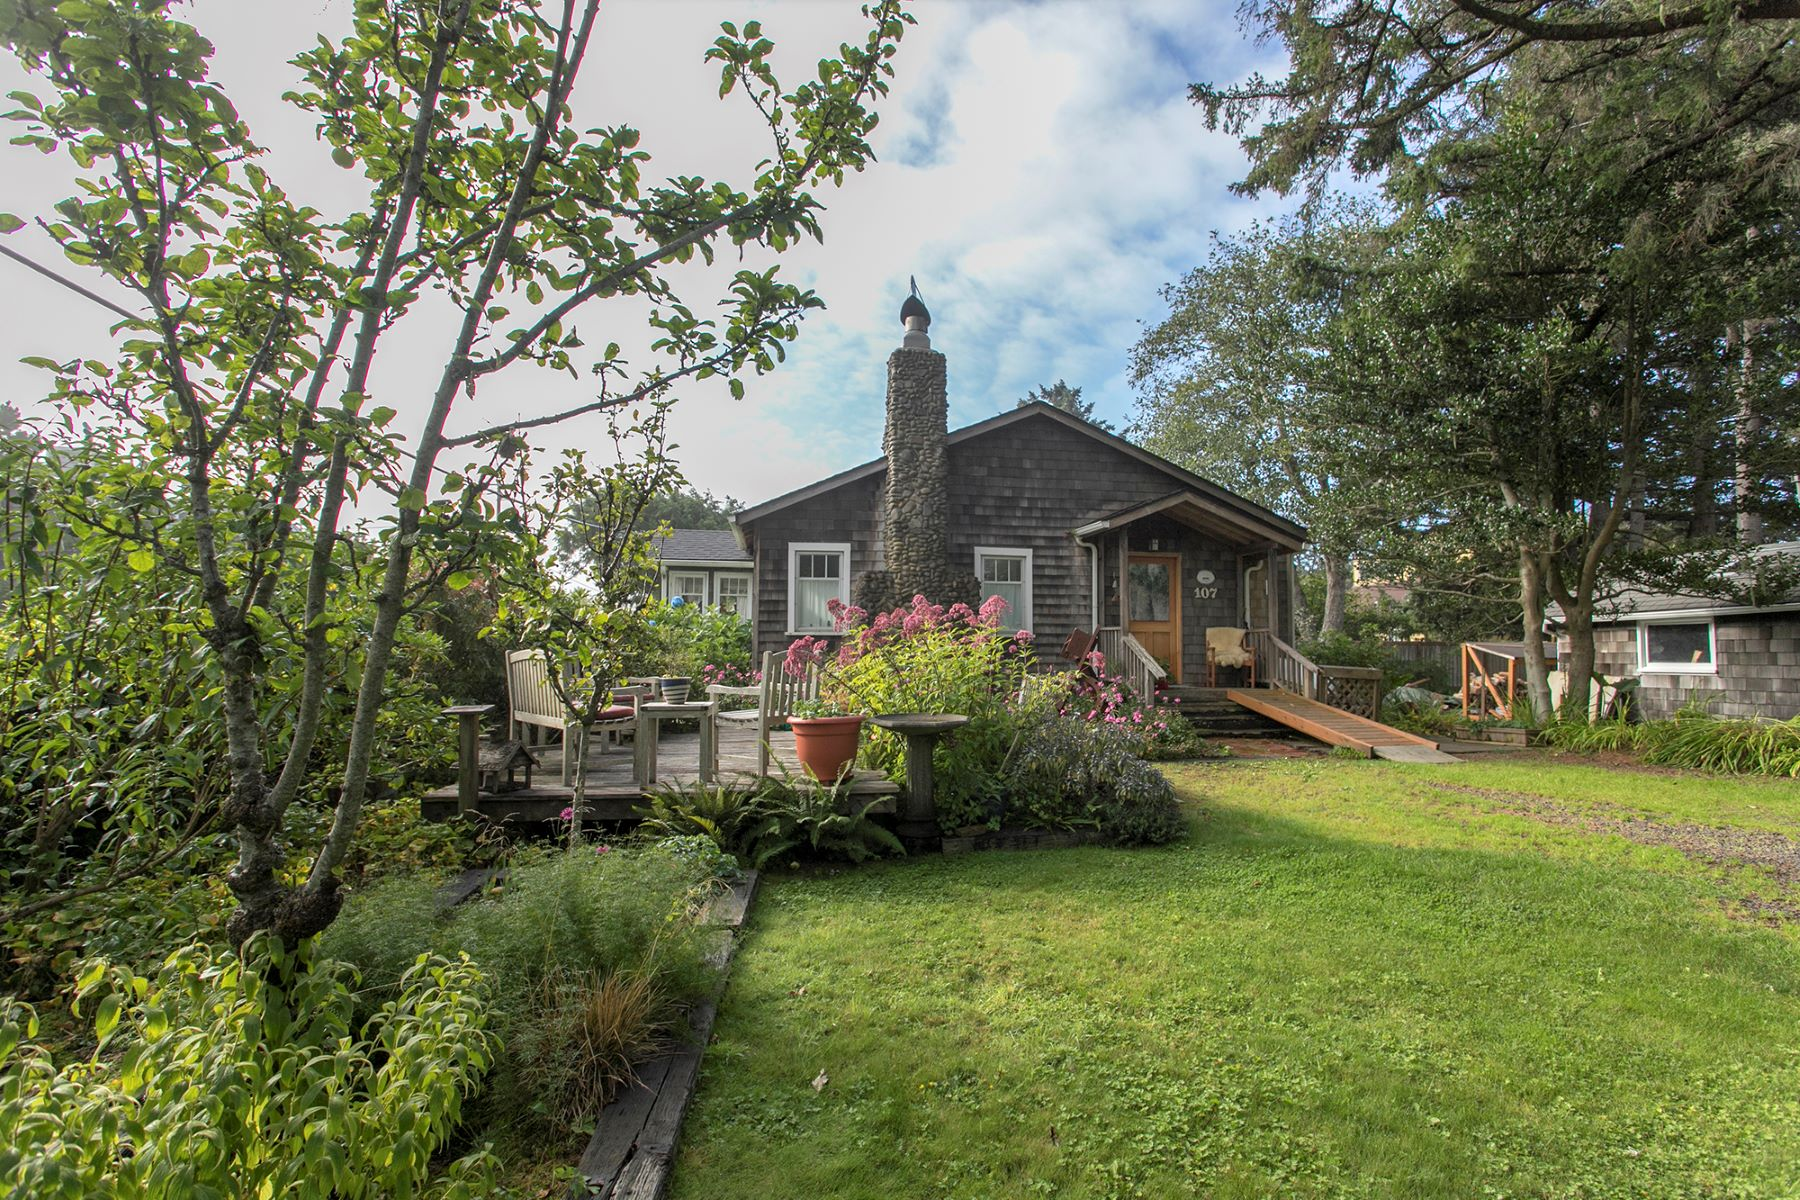 Single Family Homes for Active at West Presidential Street Cottage 107 W Washington St Cannon Beach, Oregon 97110 United States